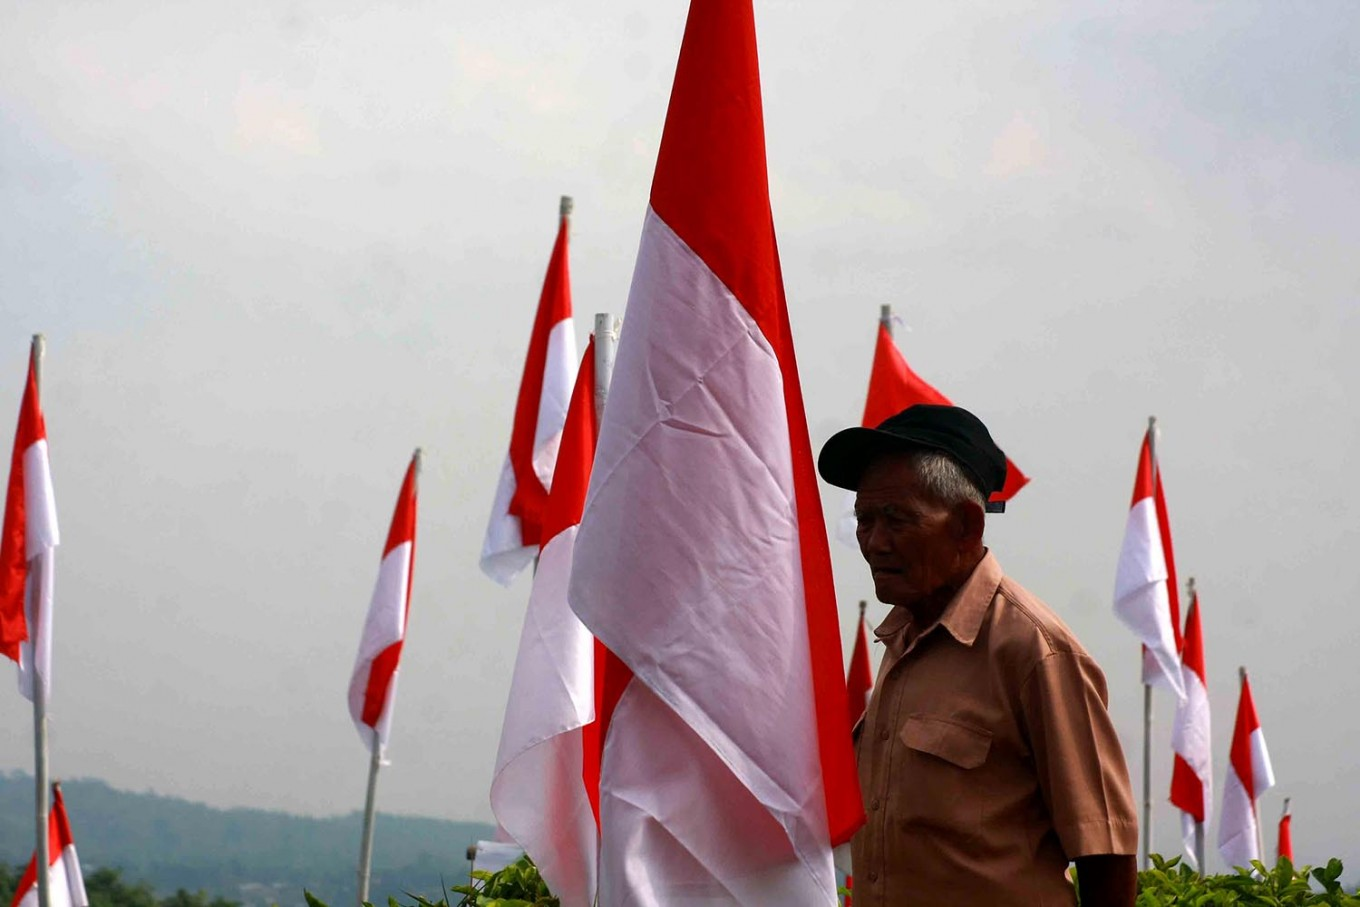 Decorating Mount Cilik with red-and-white flags